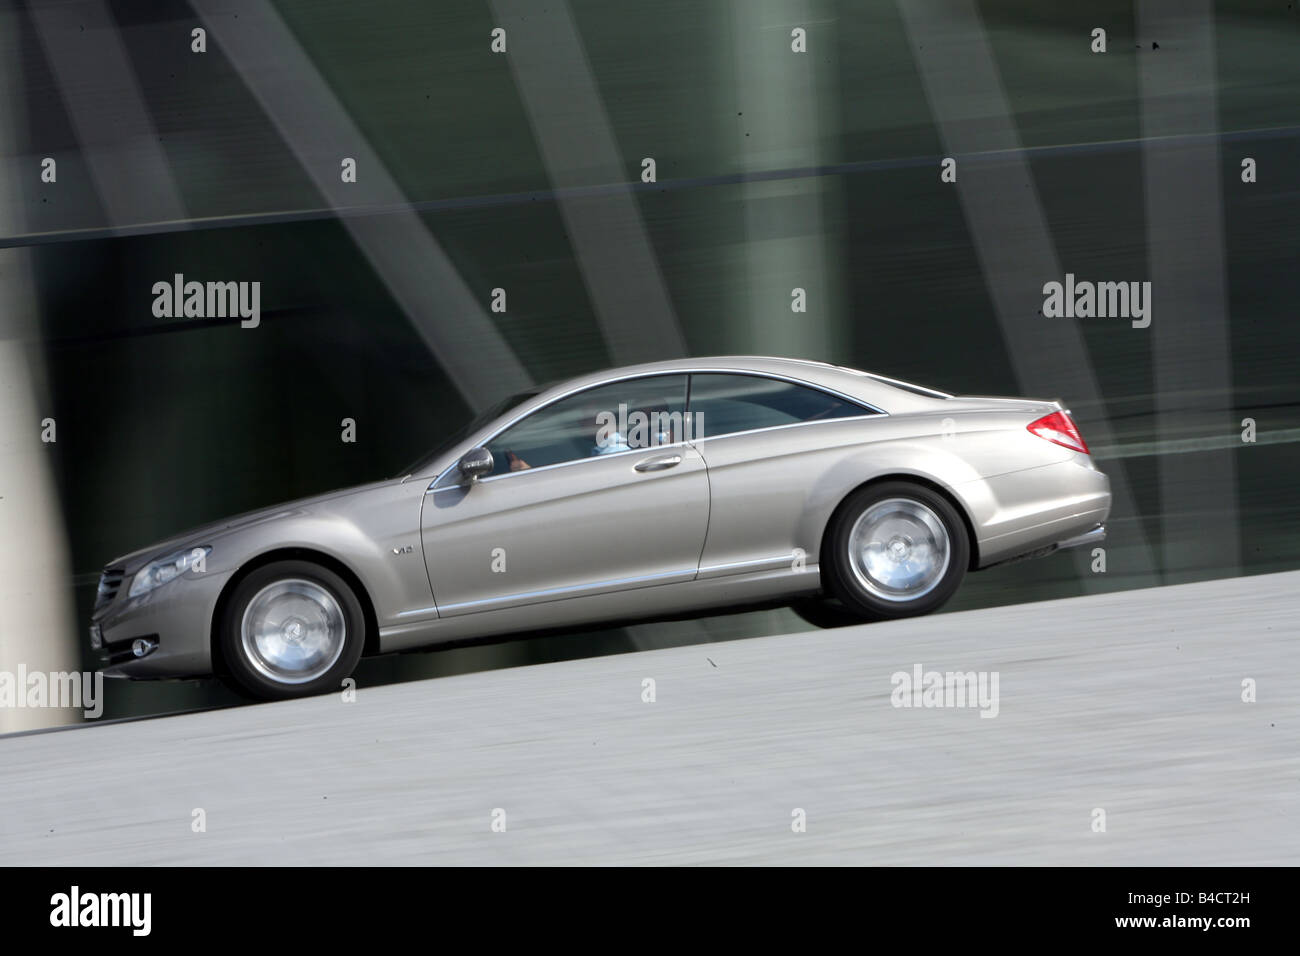 Mercedes CL 600, model year 2006-, silver, driving, side view, City - Stock Image